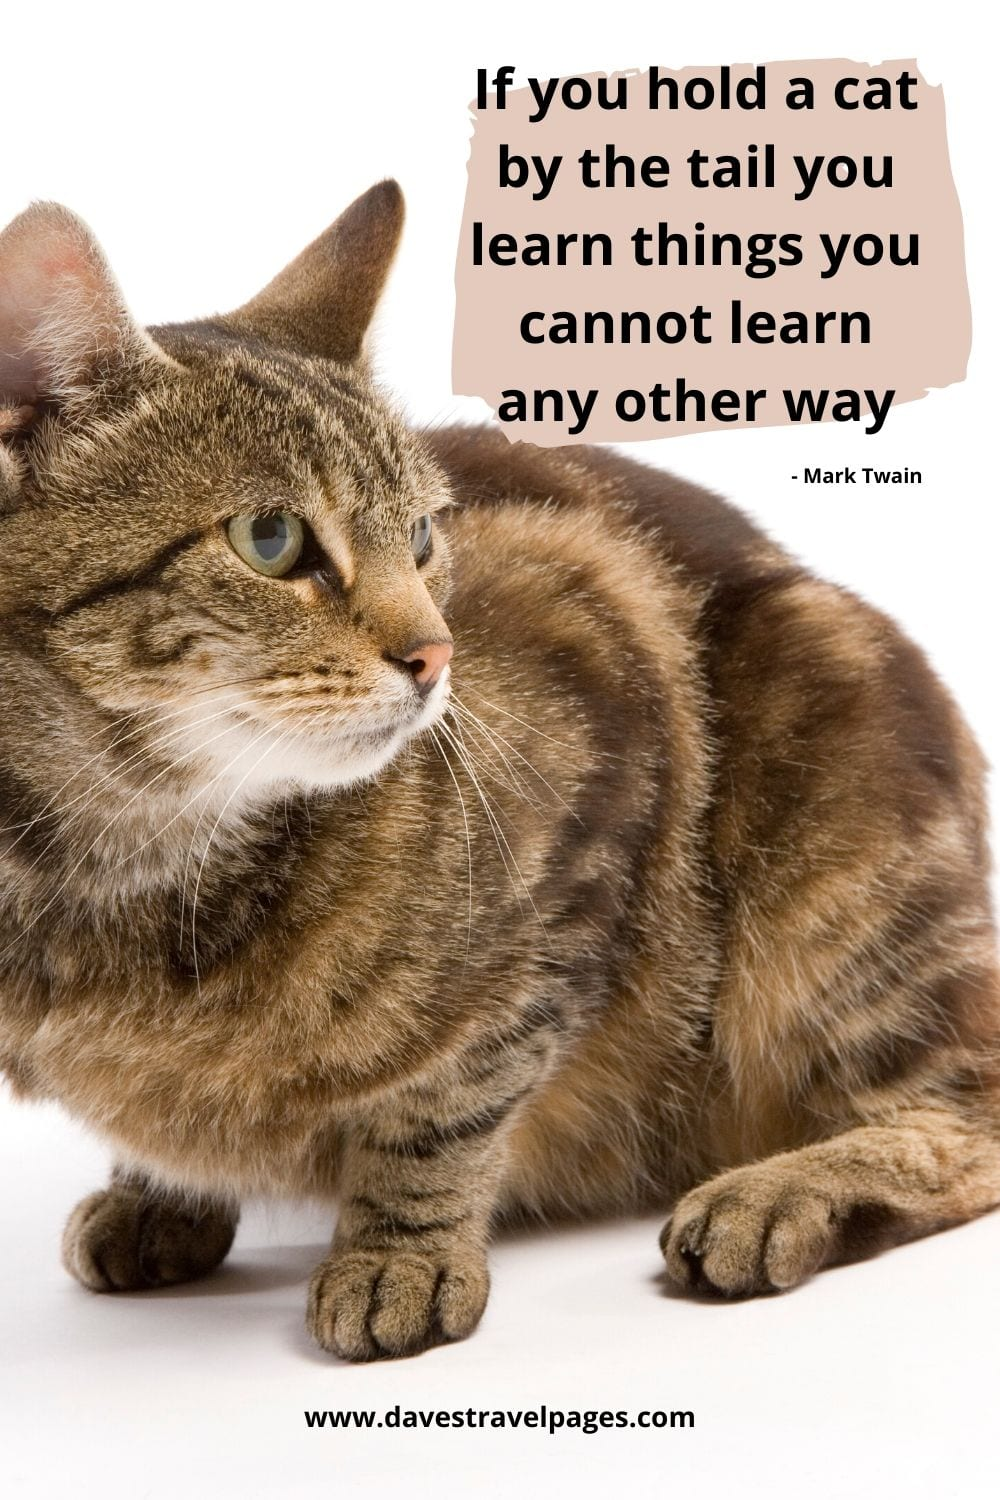 Mark Twain - If you hold a cat by the tail you learn things you cannot learn any other way. Mark Twain